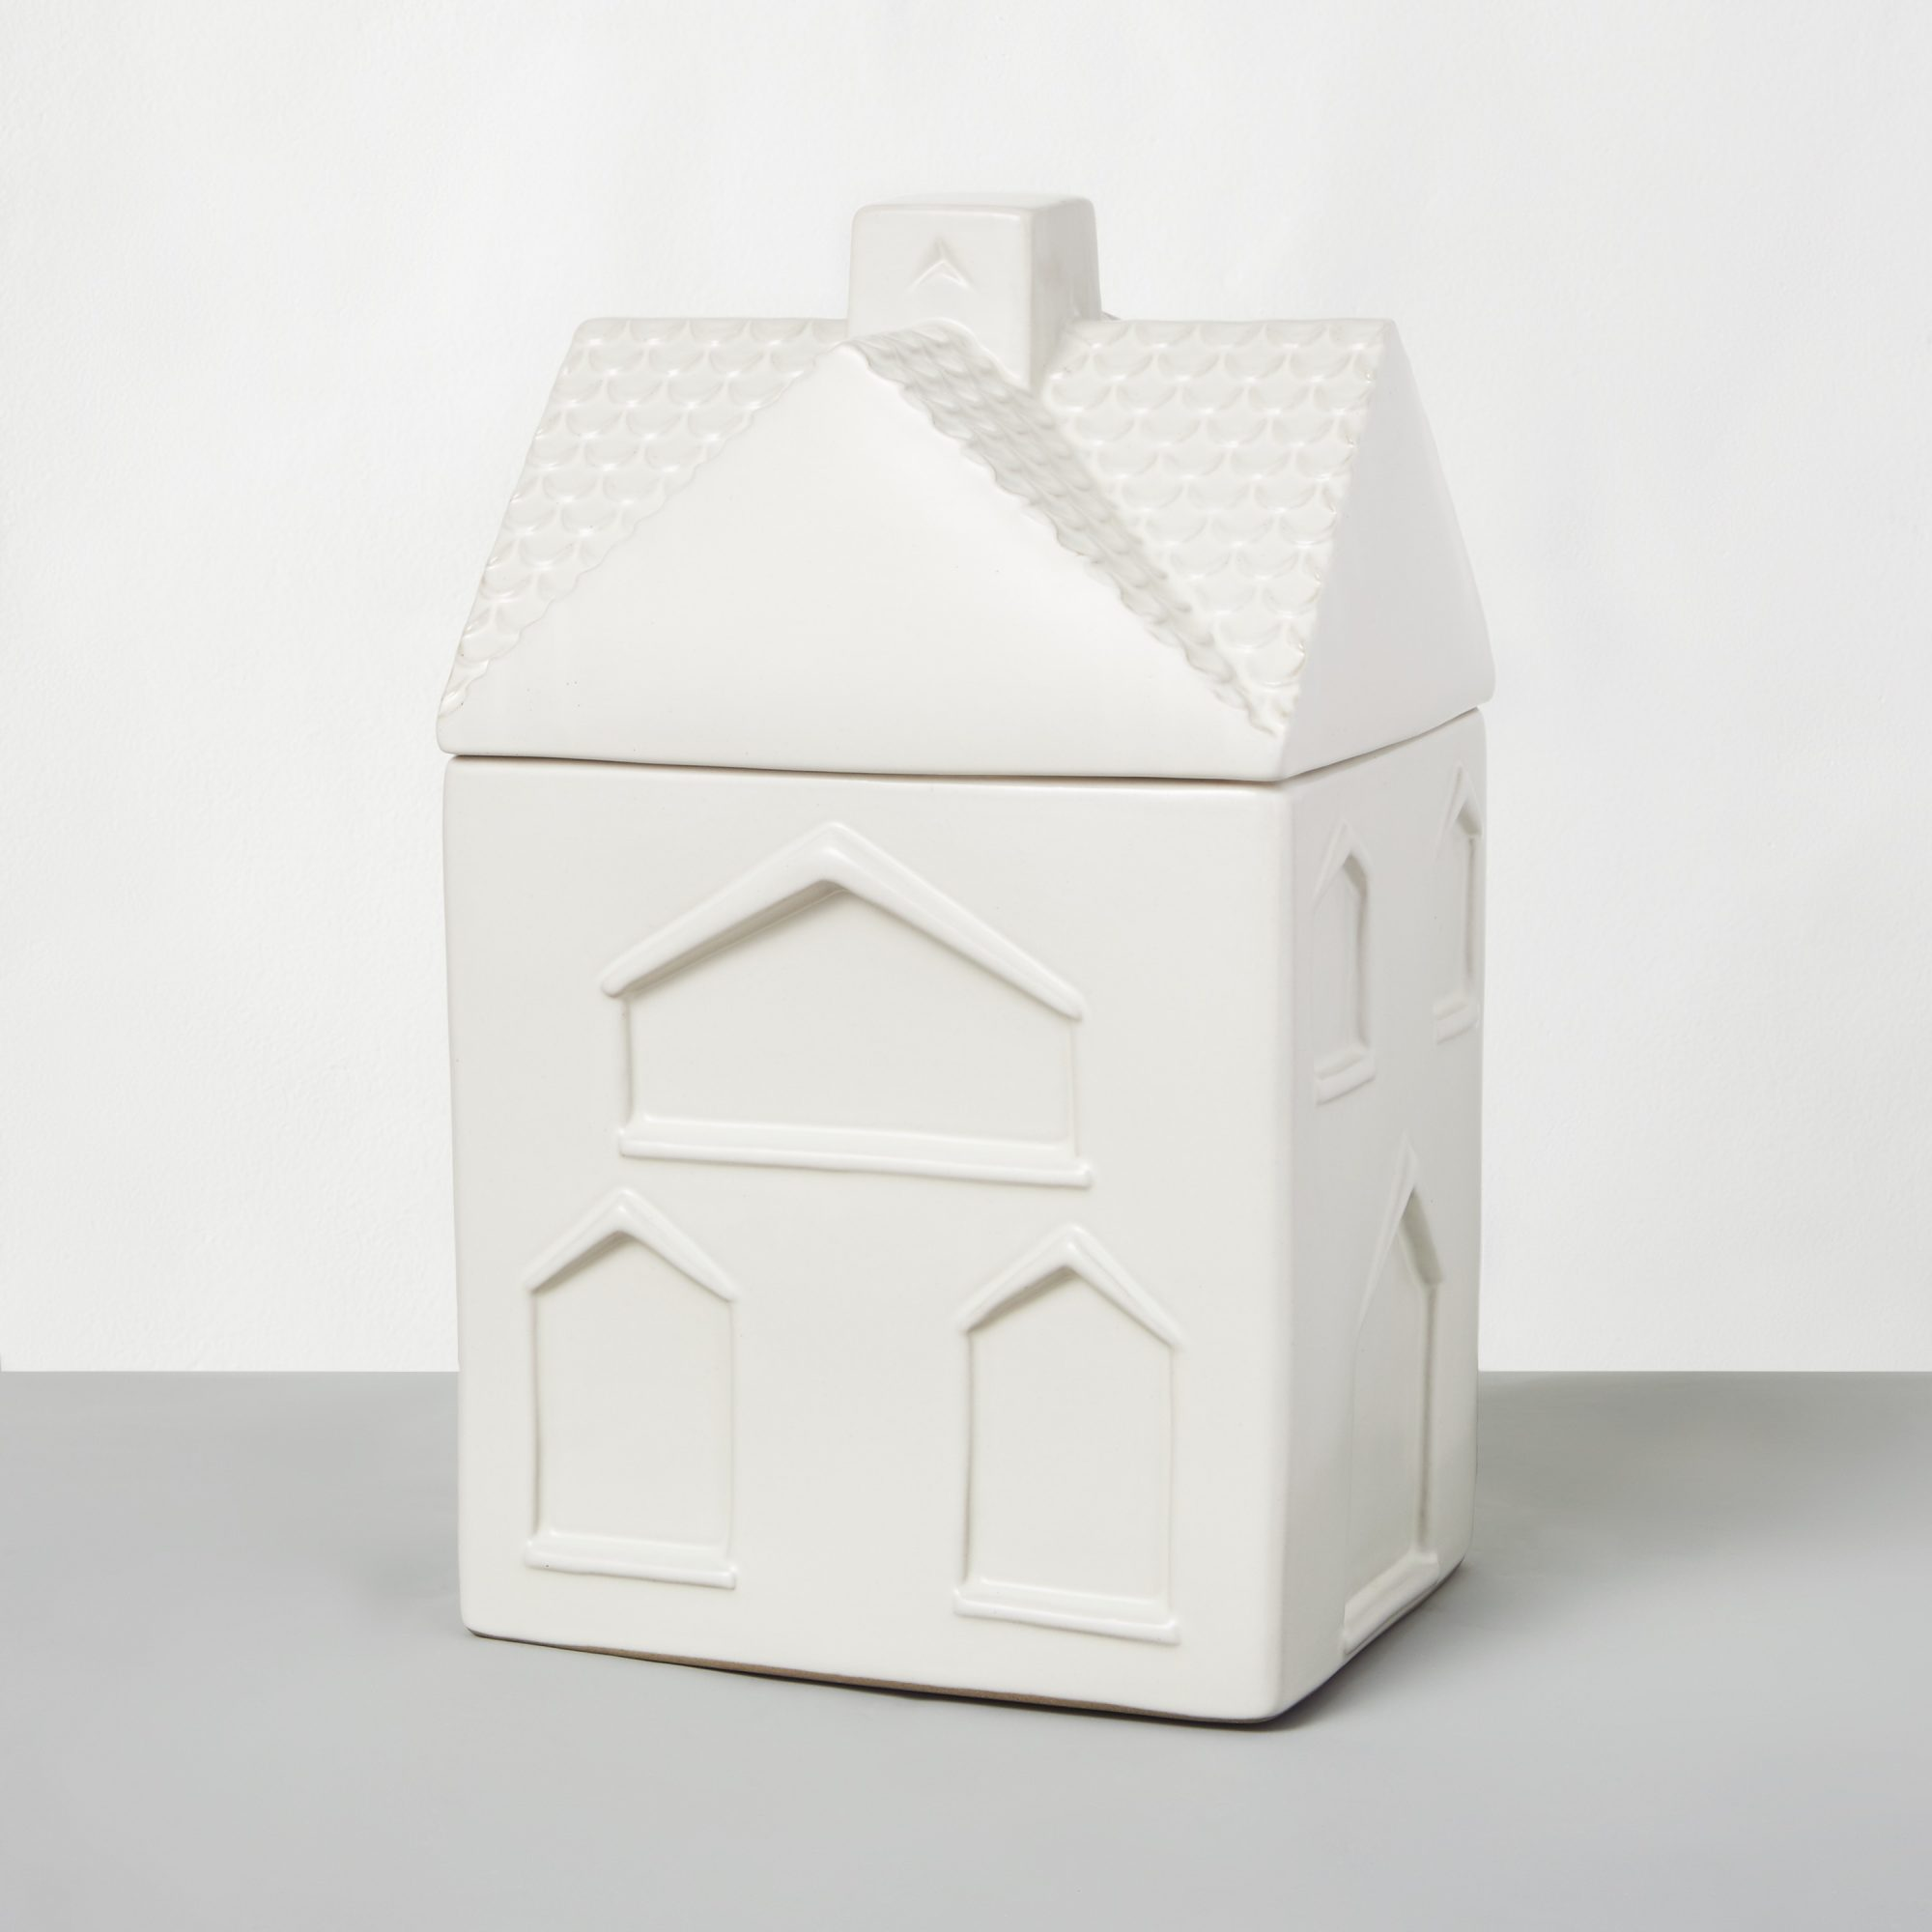 Store Christmas cookies in an adorable jar that resembles a gingerbread house, which has a total capacity of 102 ounces. When you finish eating homemade cookies from the jar, hand wash it to preserve the glazed finish and fine details.                             Shop Now: Stoneware House Cookie Jar Sour Cream–Hearth & Hand™ with Magnolia, $19.99, target.com.